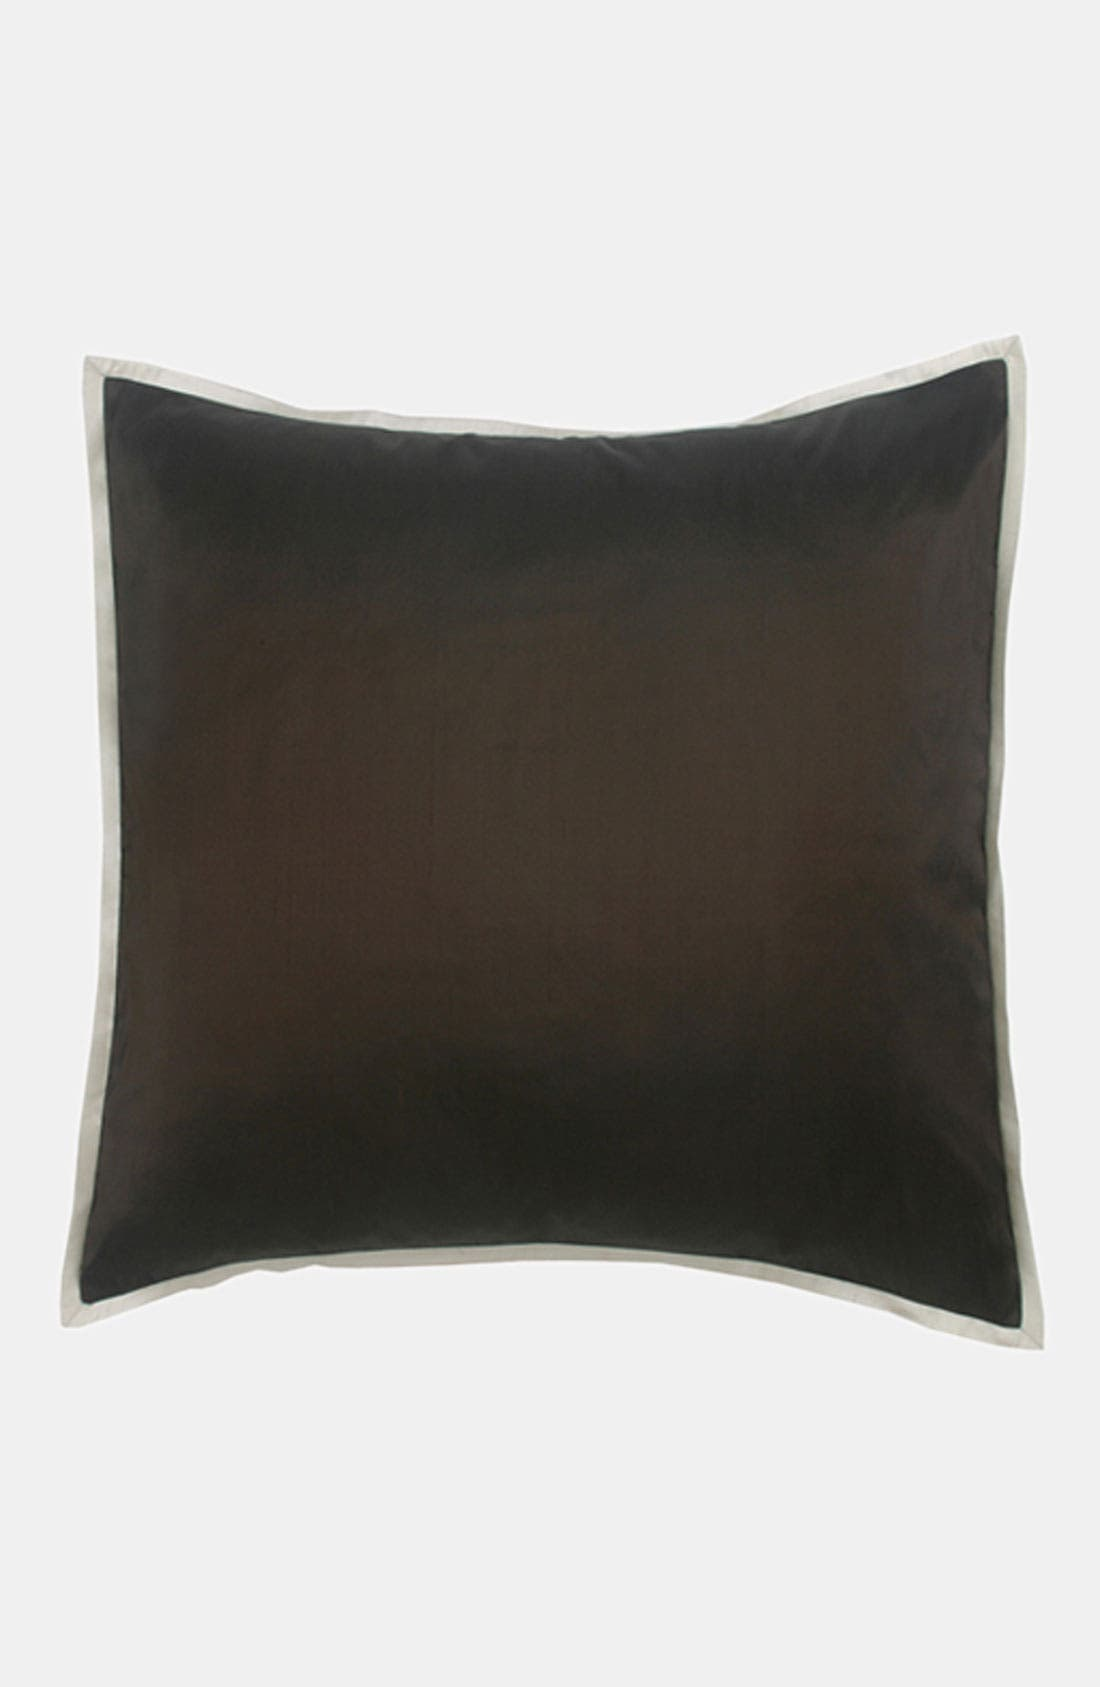 Main Image - Blissliving Home 'Lucca Cocoa' Euro Pillow (Online Only)